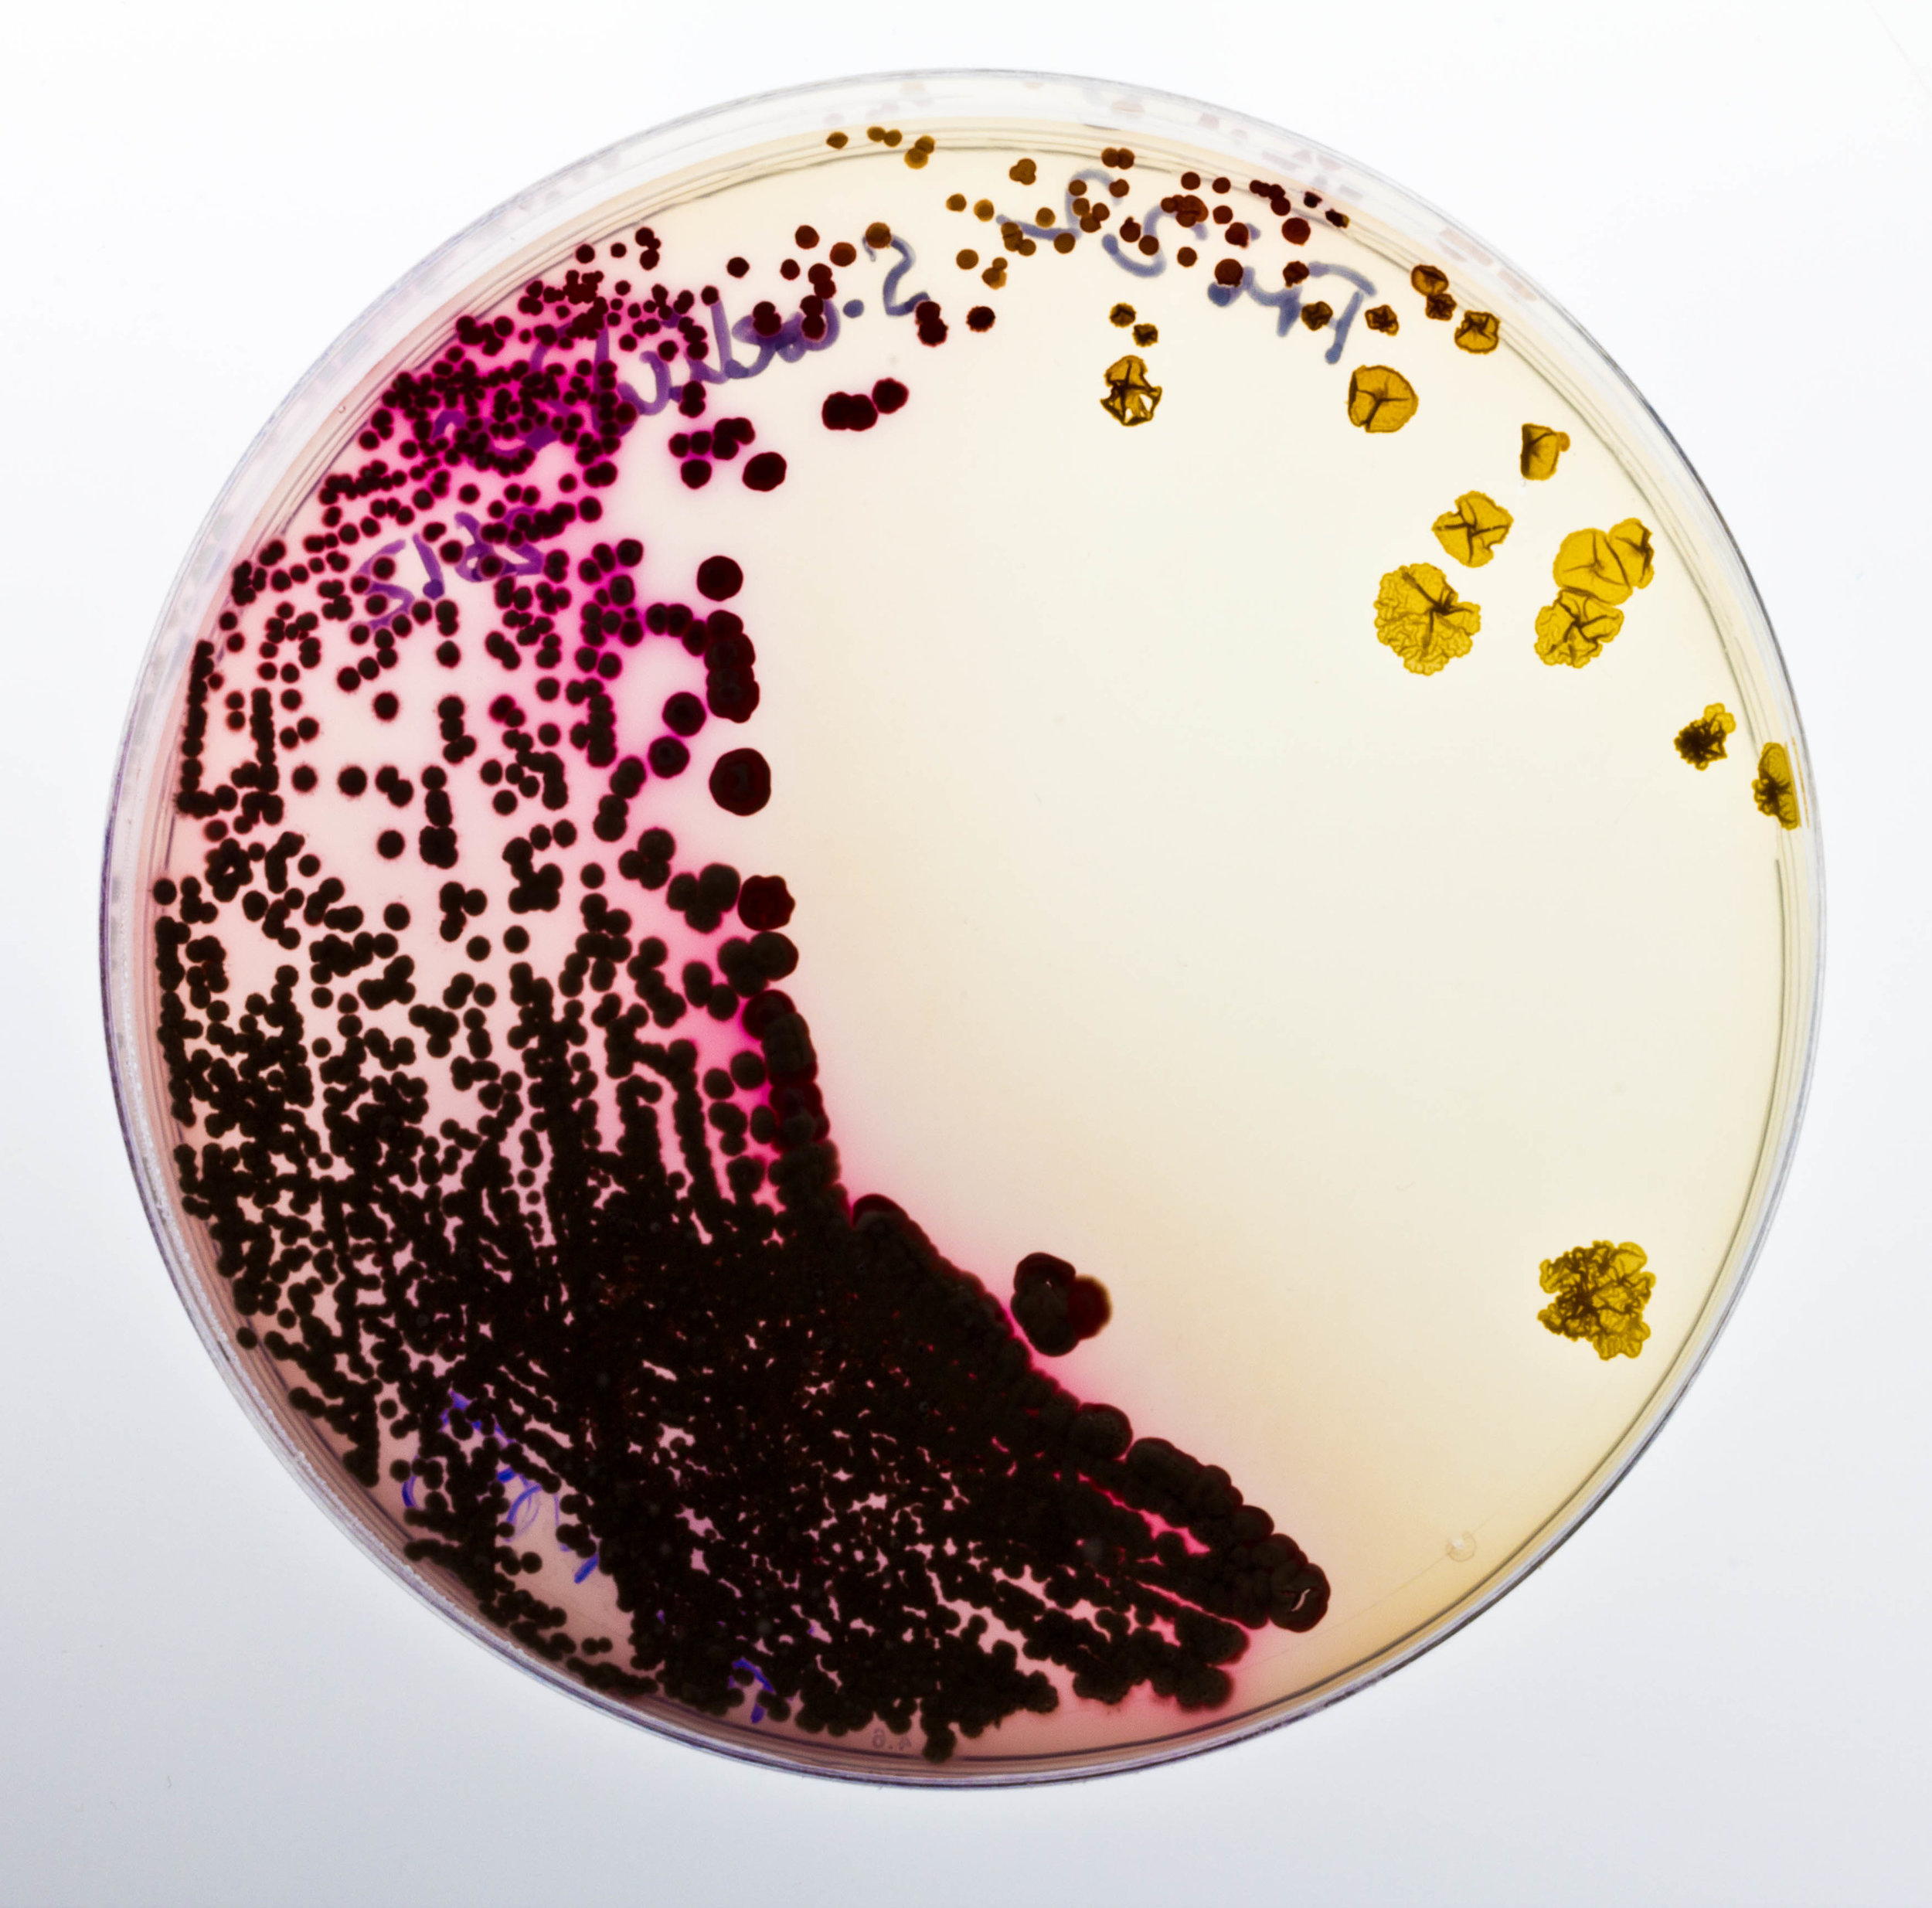 A petri dish containing pigment-producing bacteria, Cultivated by Natsai Audrey Chieza, Faber Futures